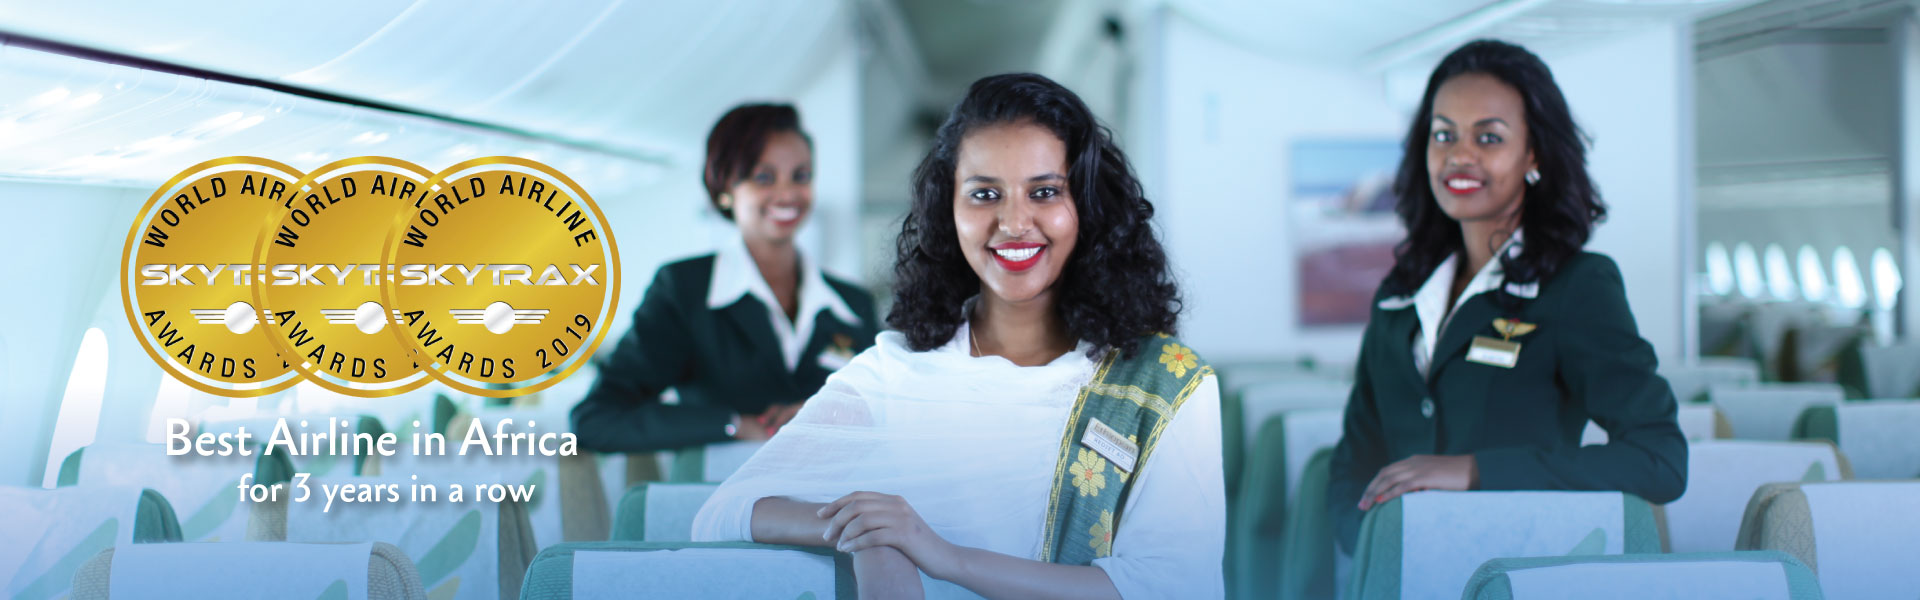 Ethiopian-Airlines vision and mission